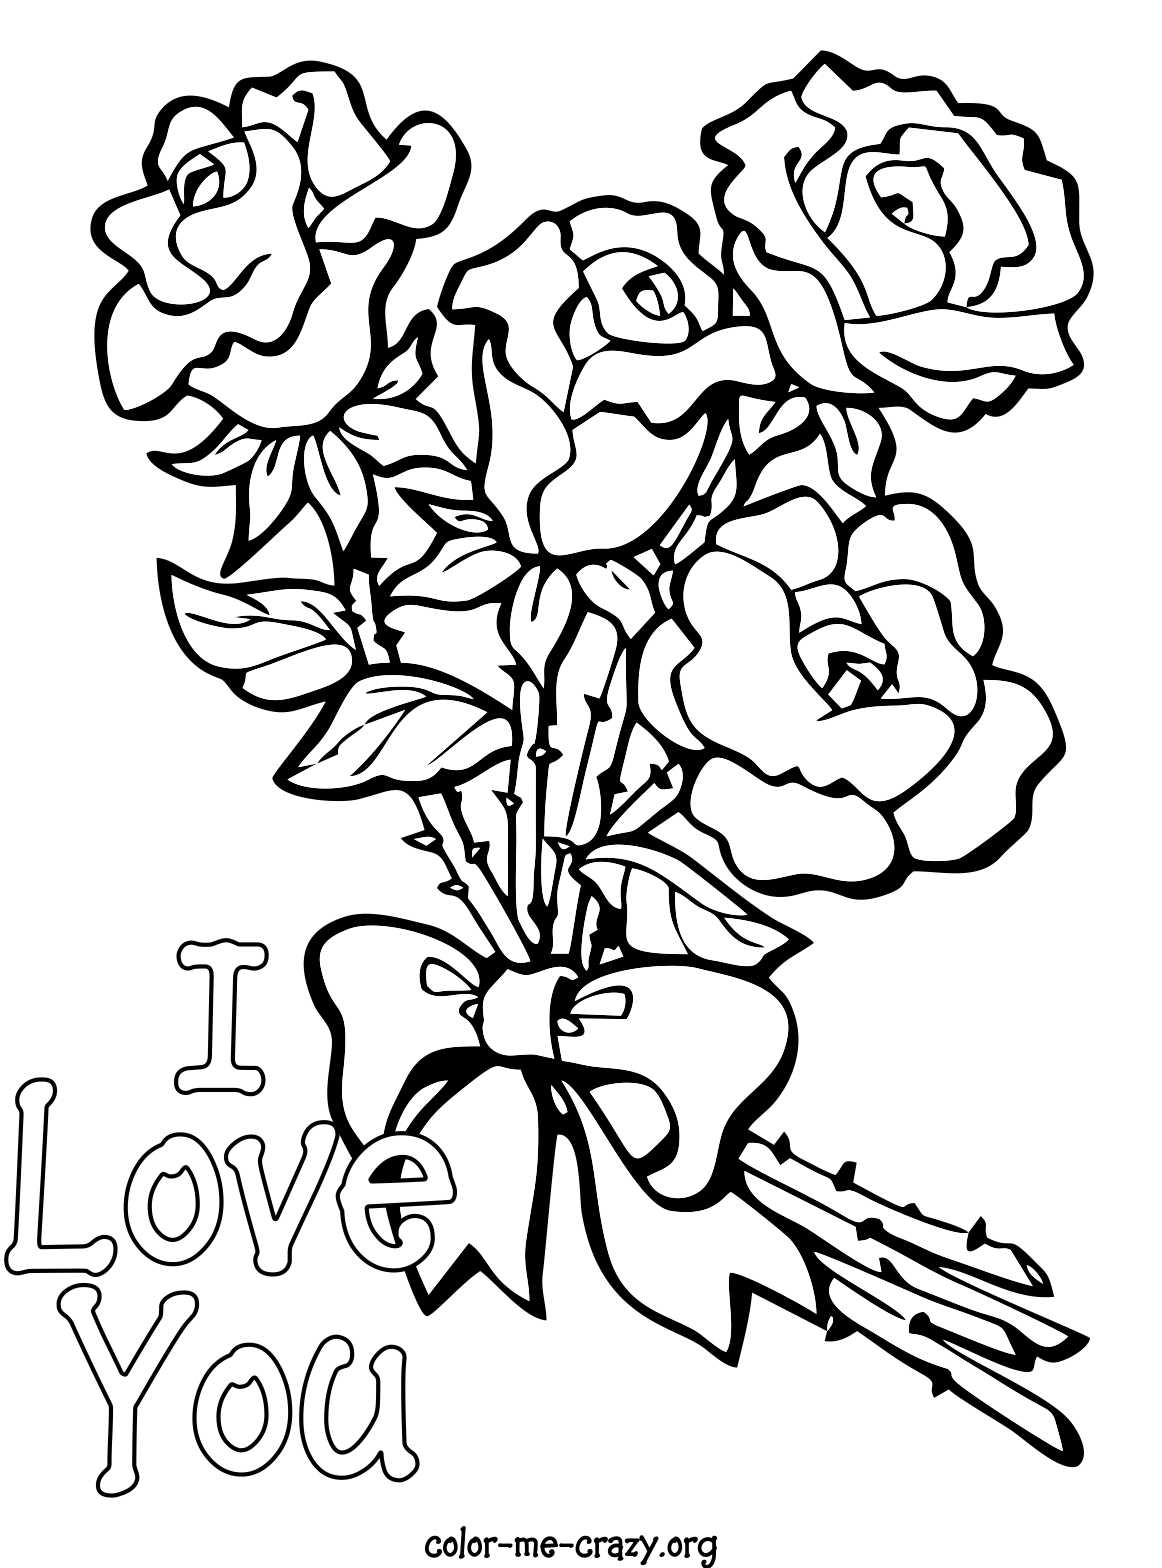 valentines coloring pages printable colormecrazyorg valentine coloring pages printable pages valentines coloring